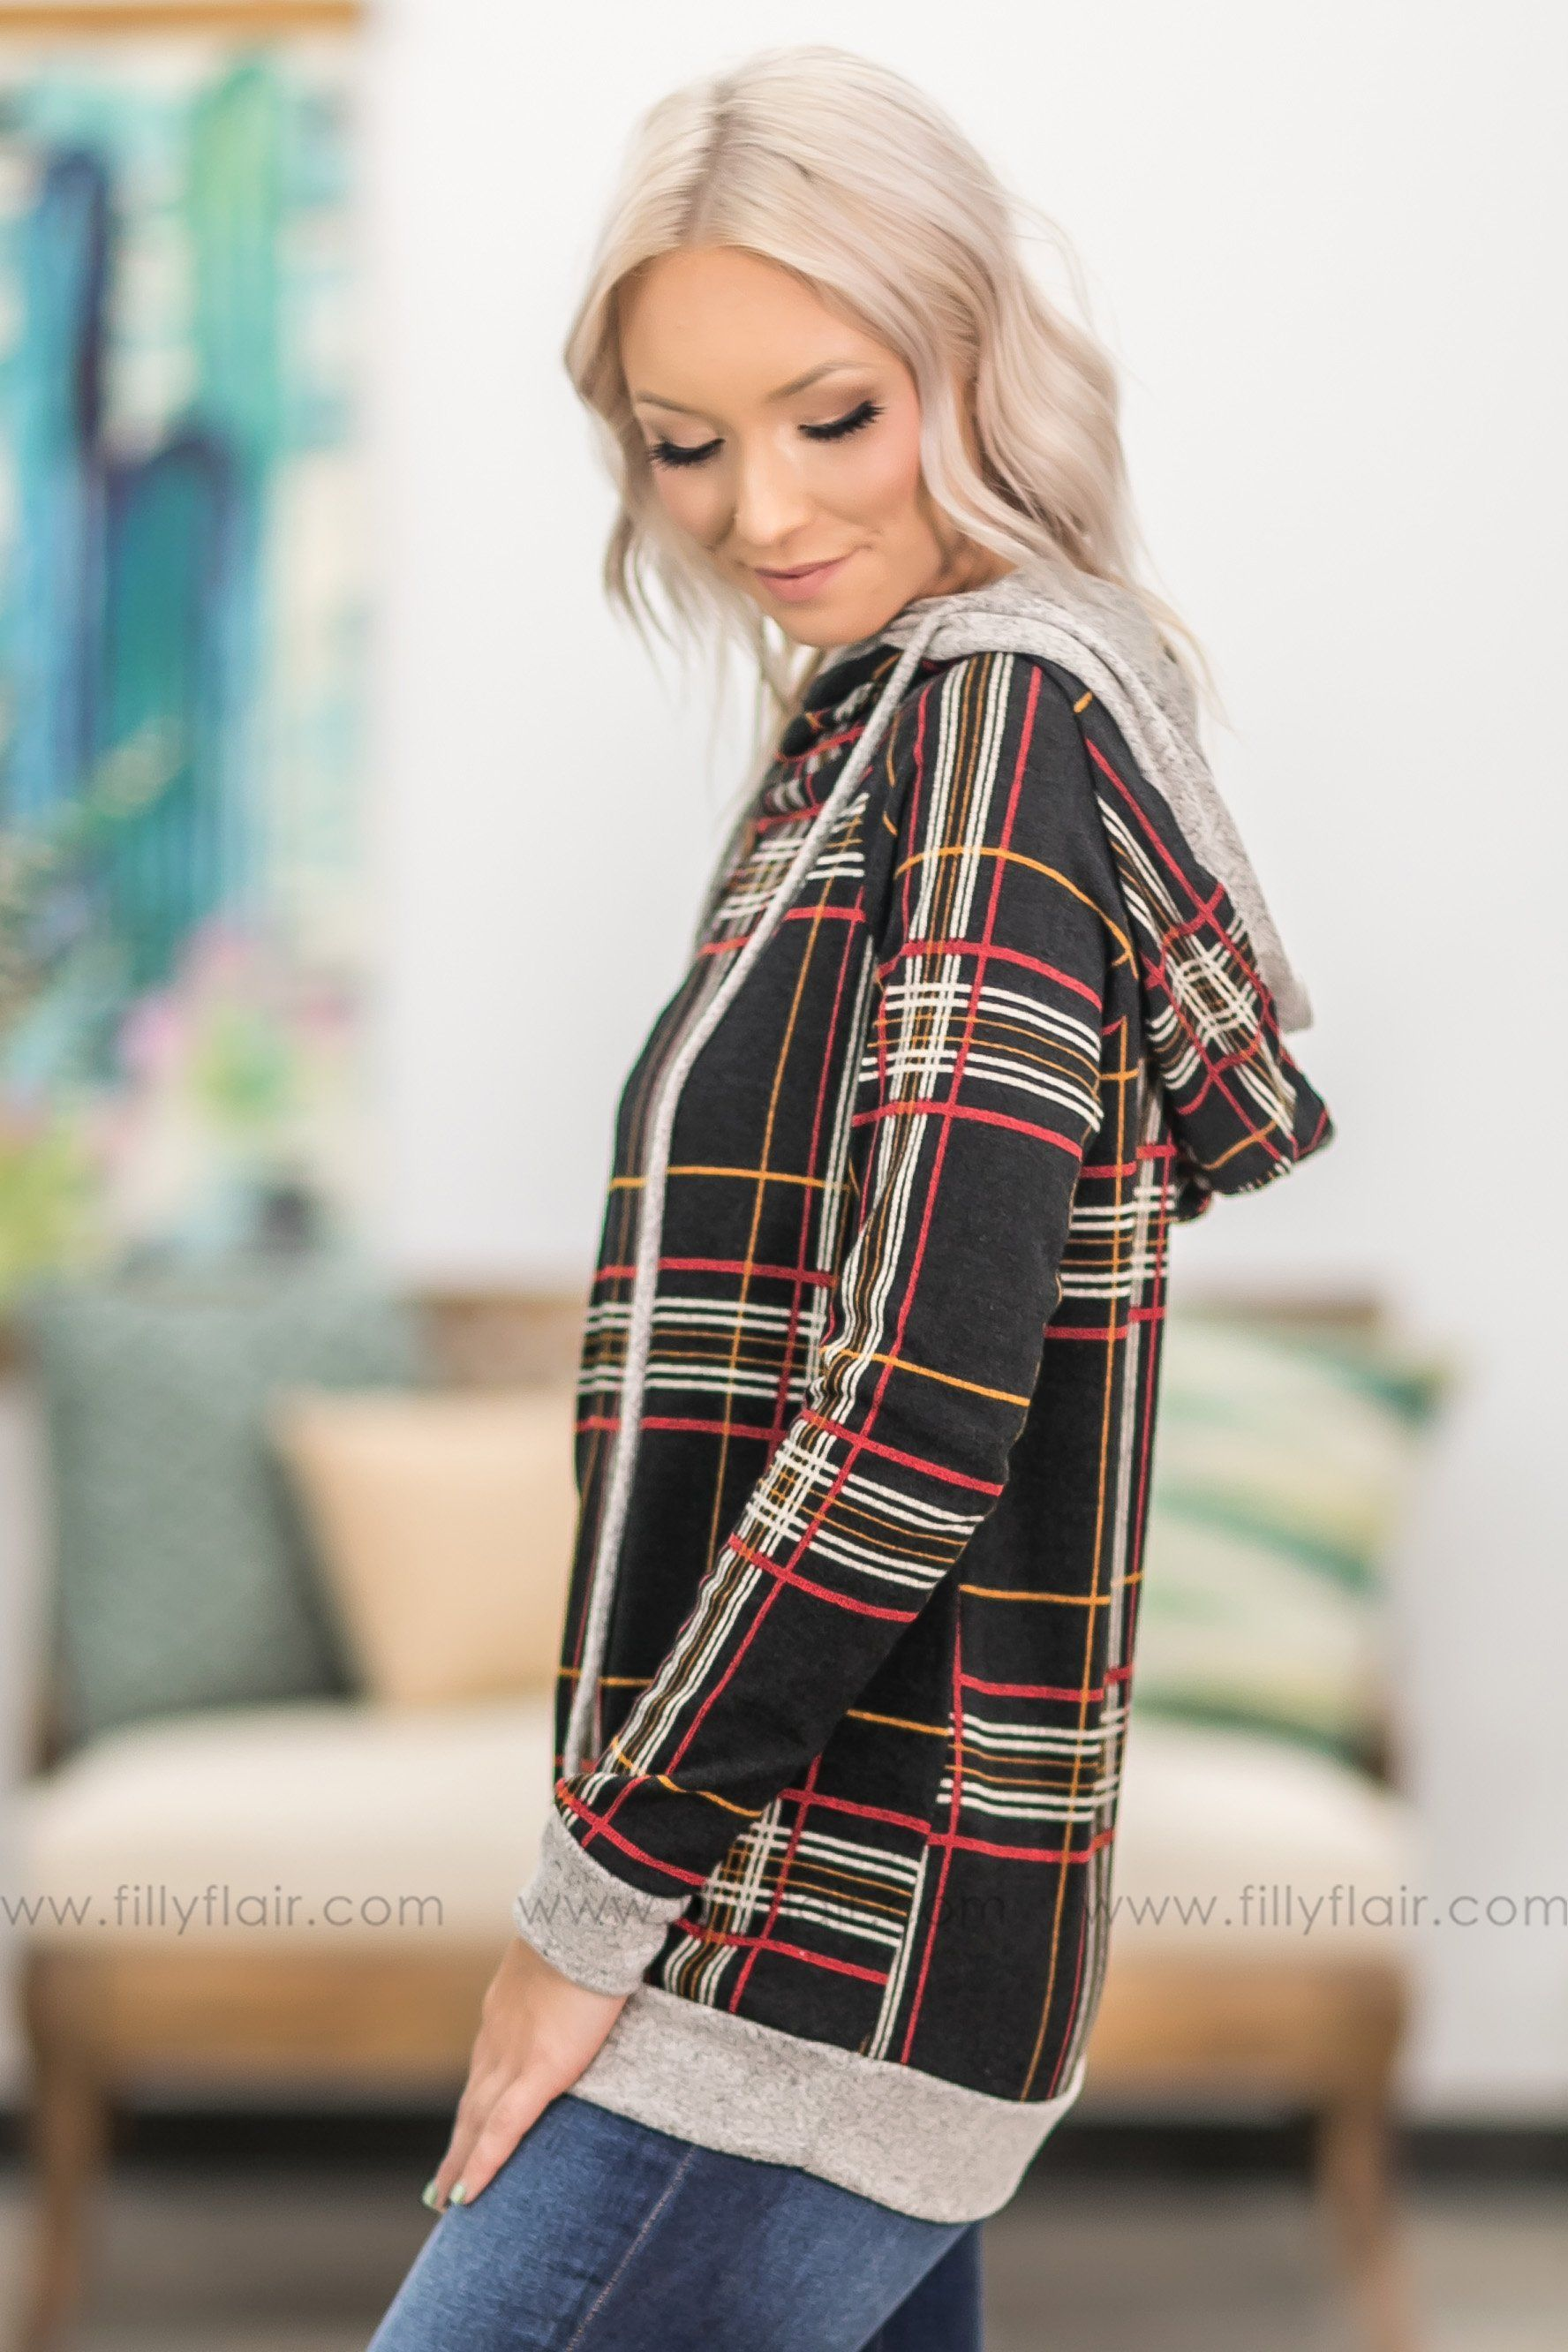 Streets of Gold Plaid Double Hooded Top in Black - Filly Flair